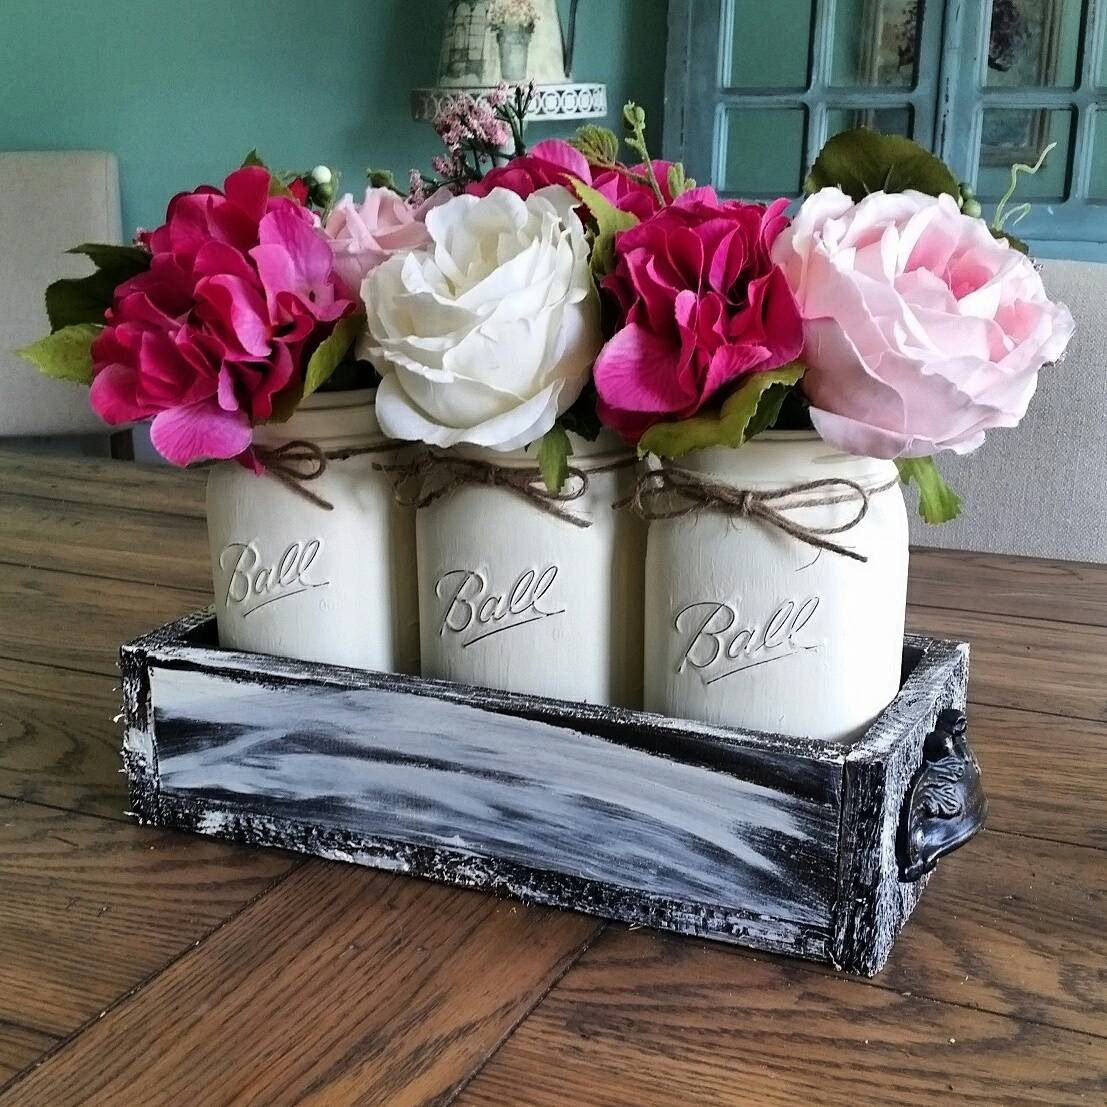 Home Design Gift Ideas: Valentine's Day Gift For Her